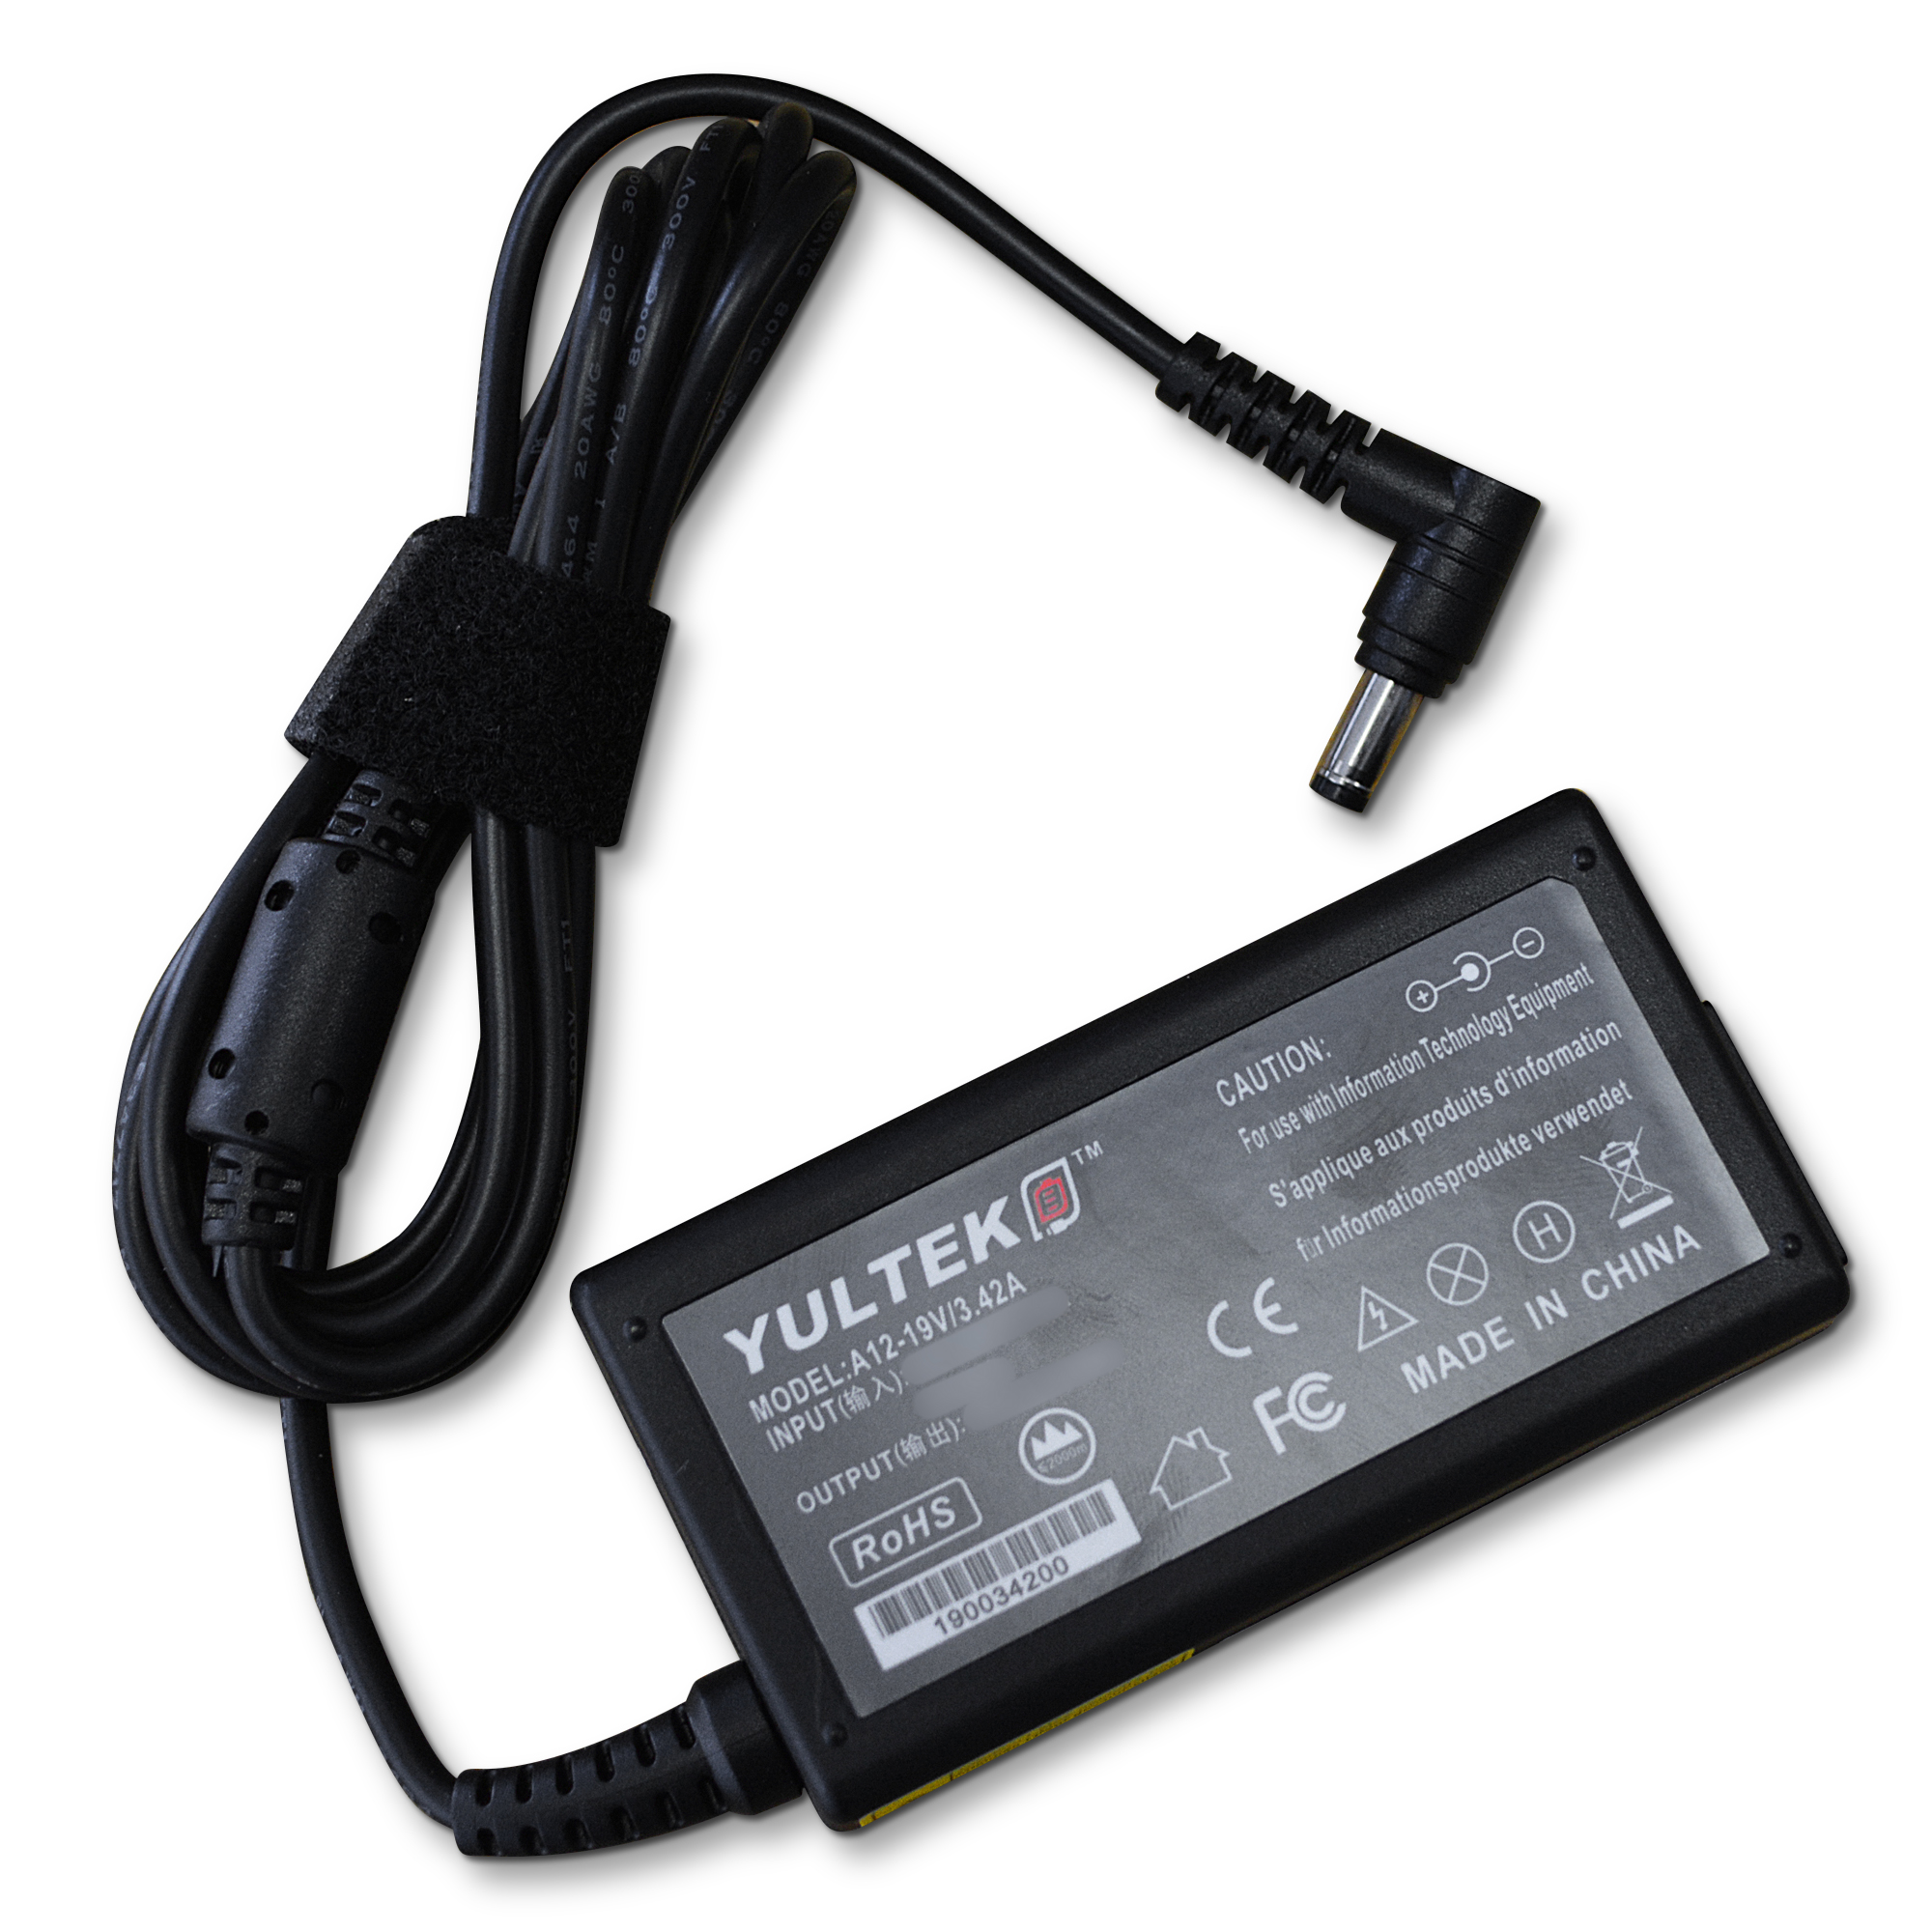 Fujitsu-Siemens Part Number WTS:25.10181.061 Laptop Charger